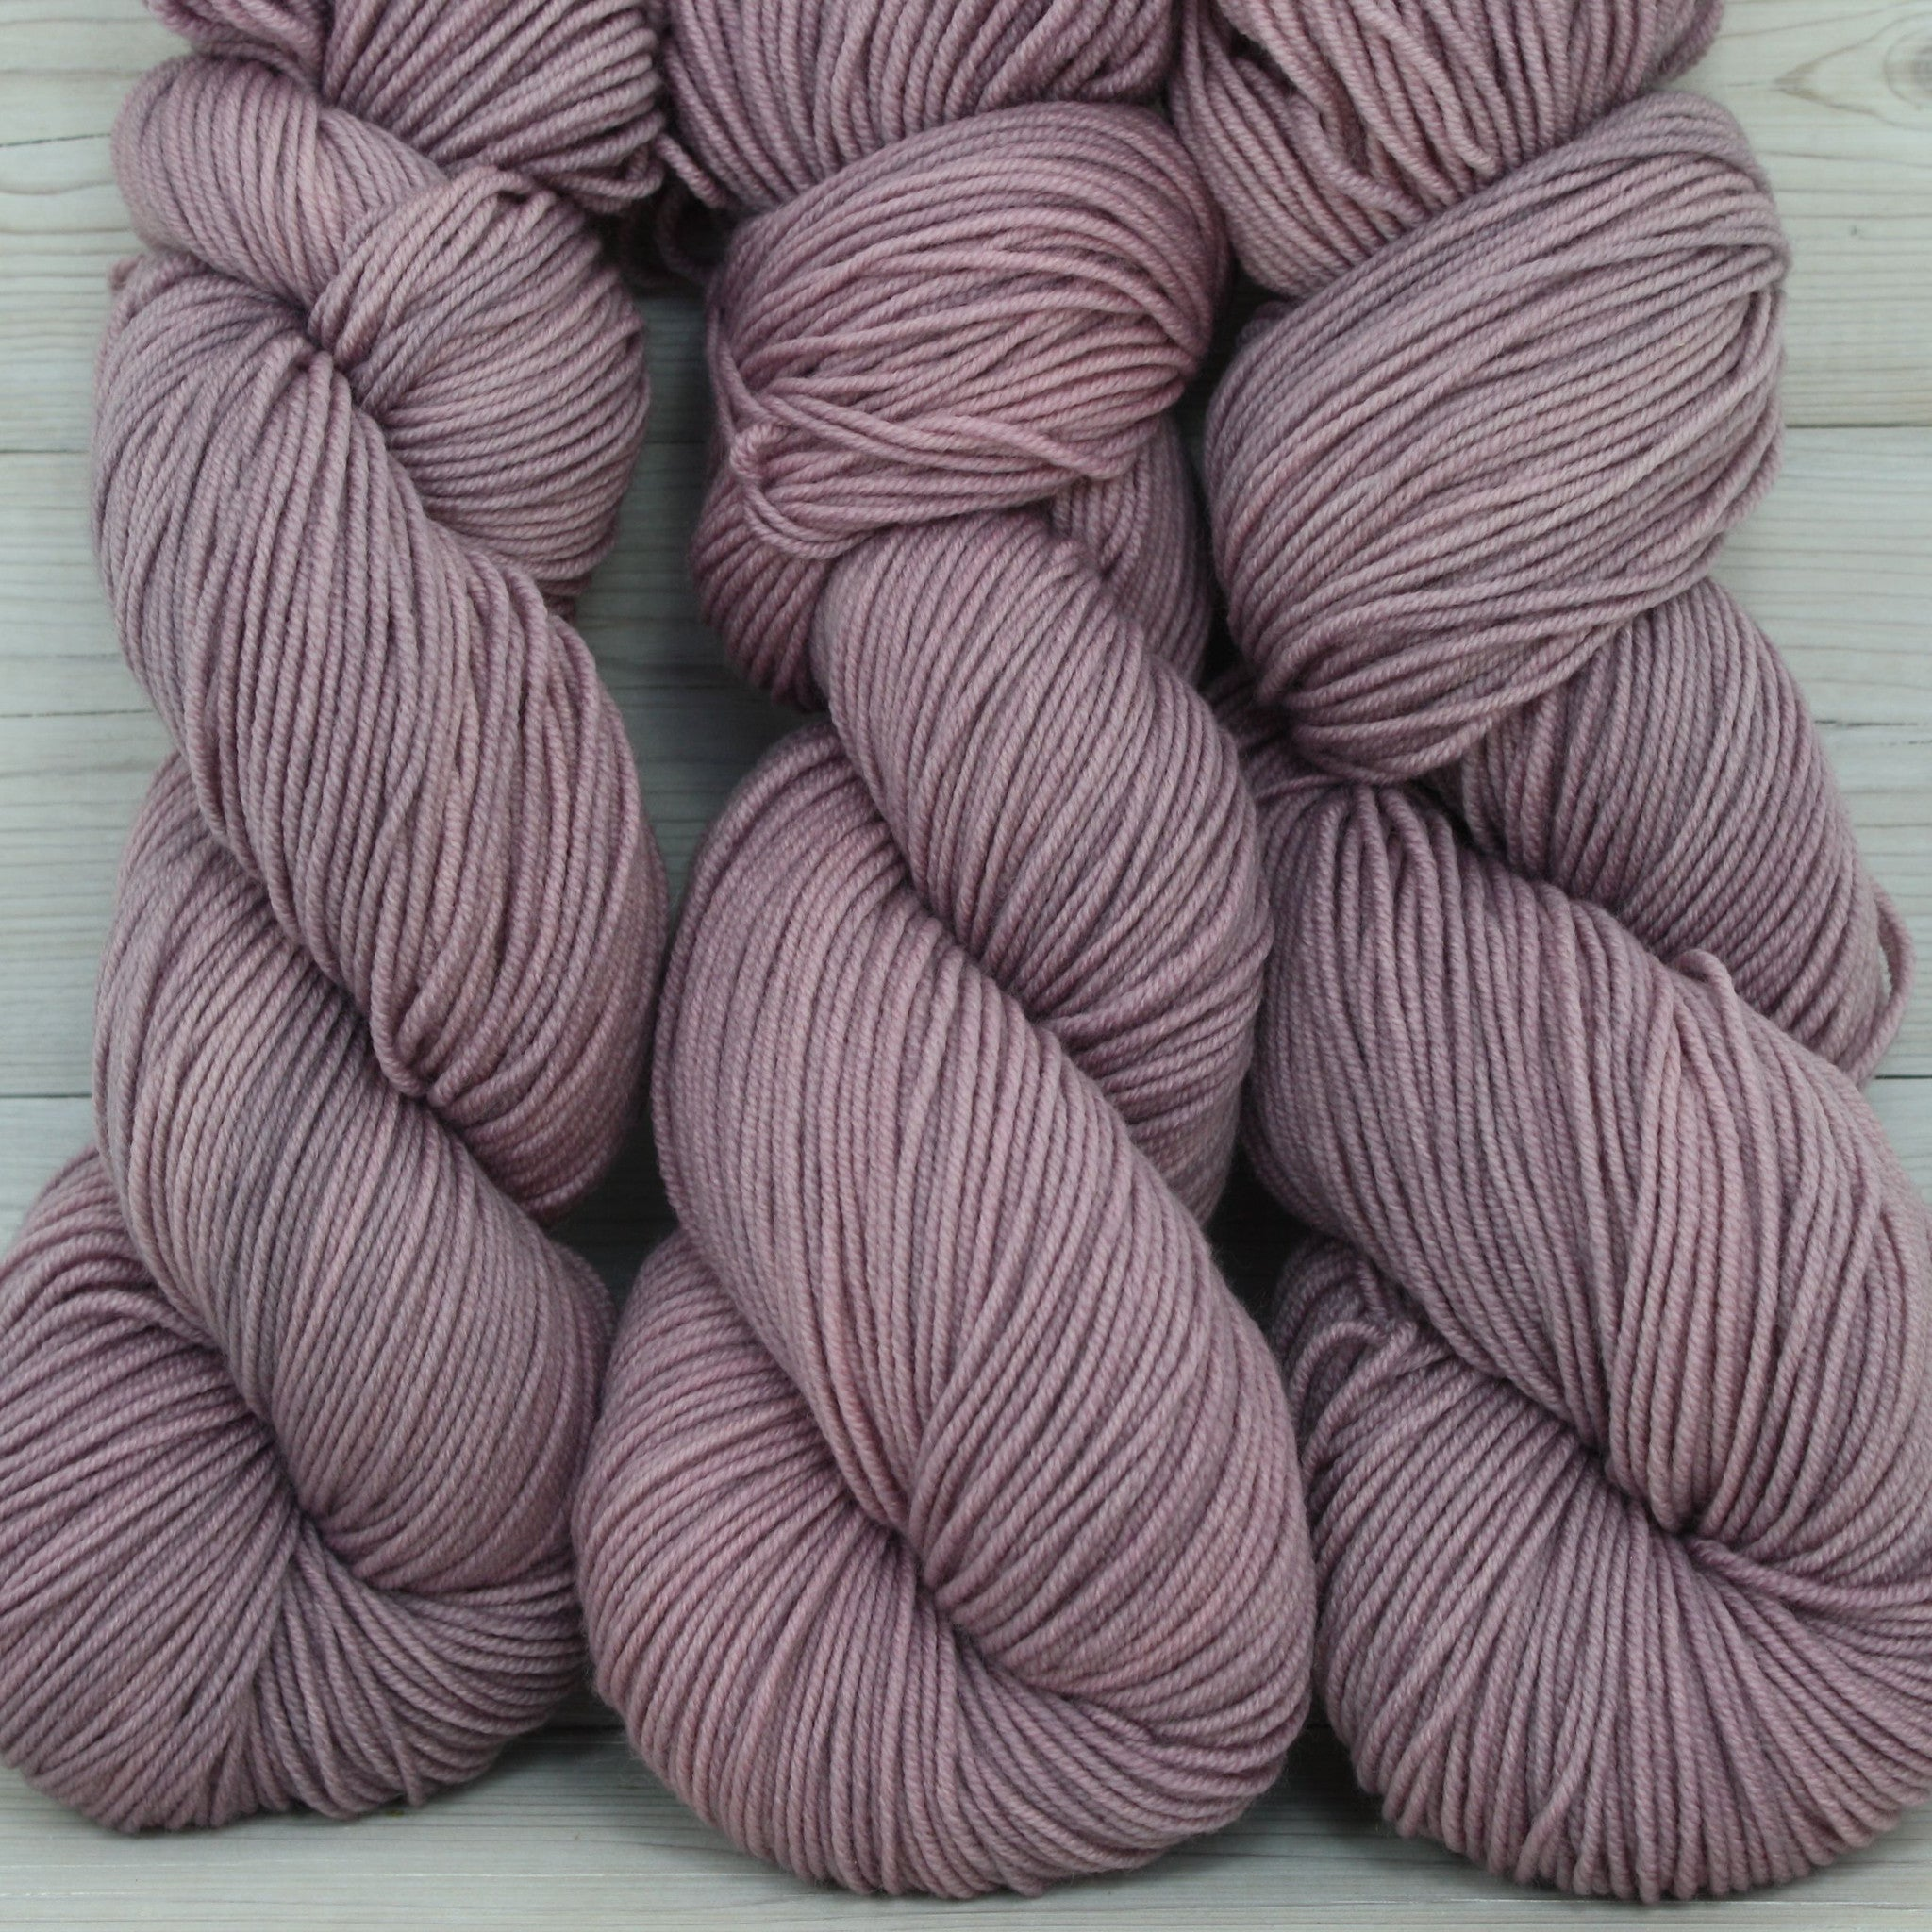 Aspen Sport Yarn | Colorway: Sanctuary